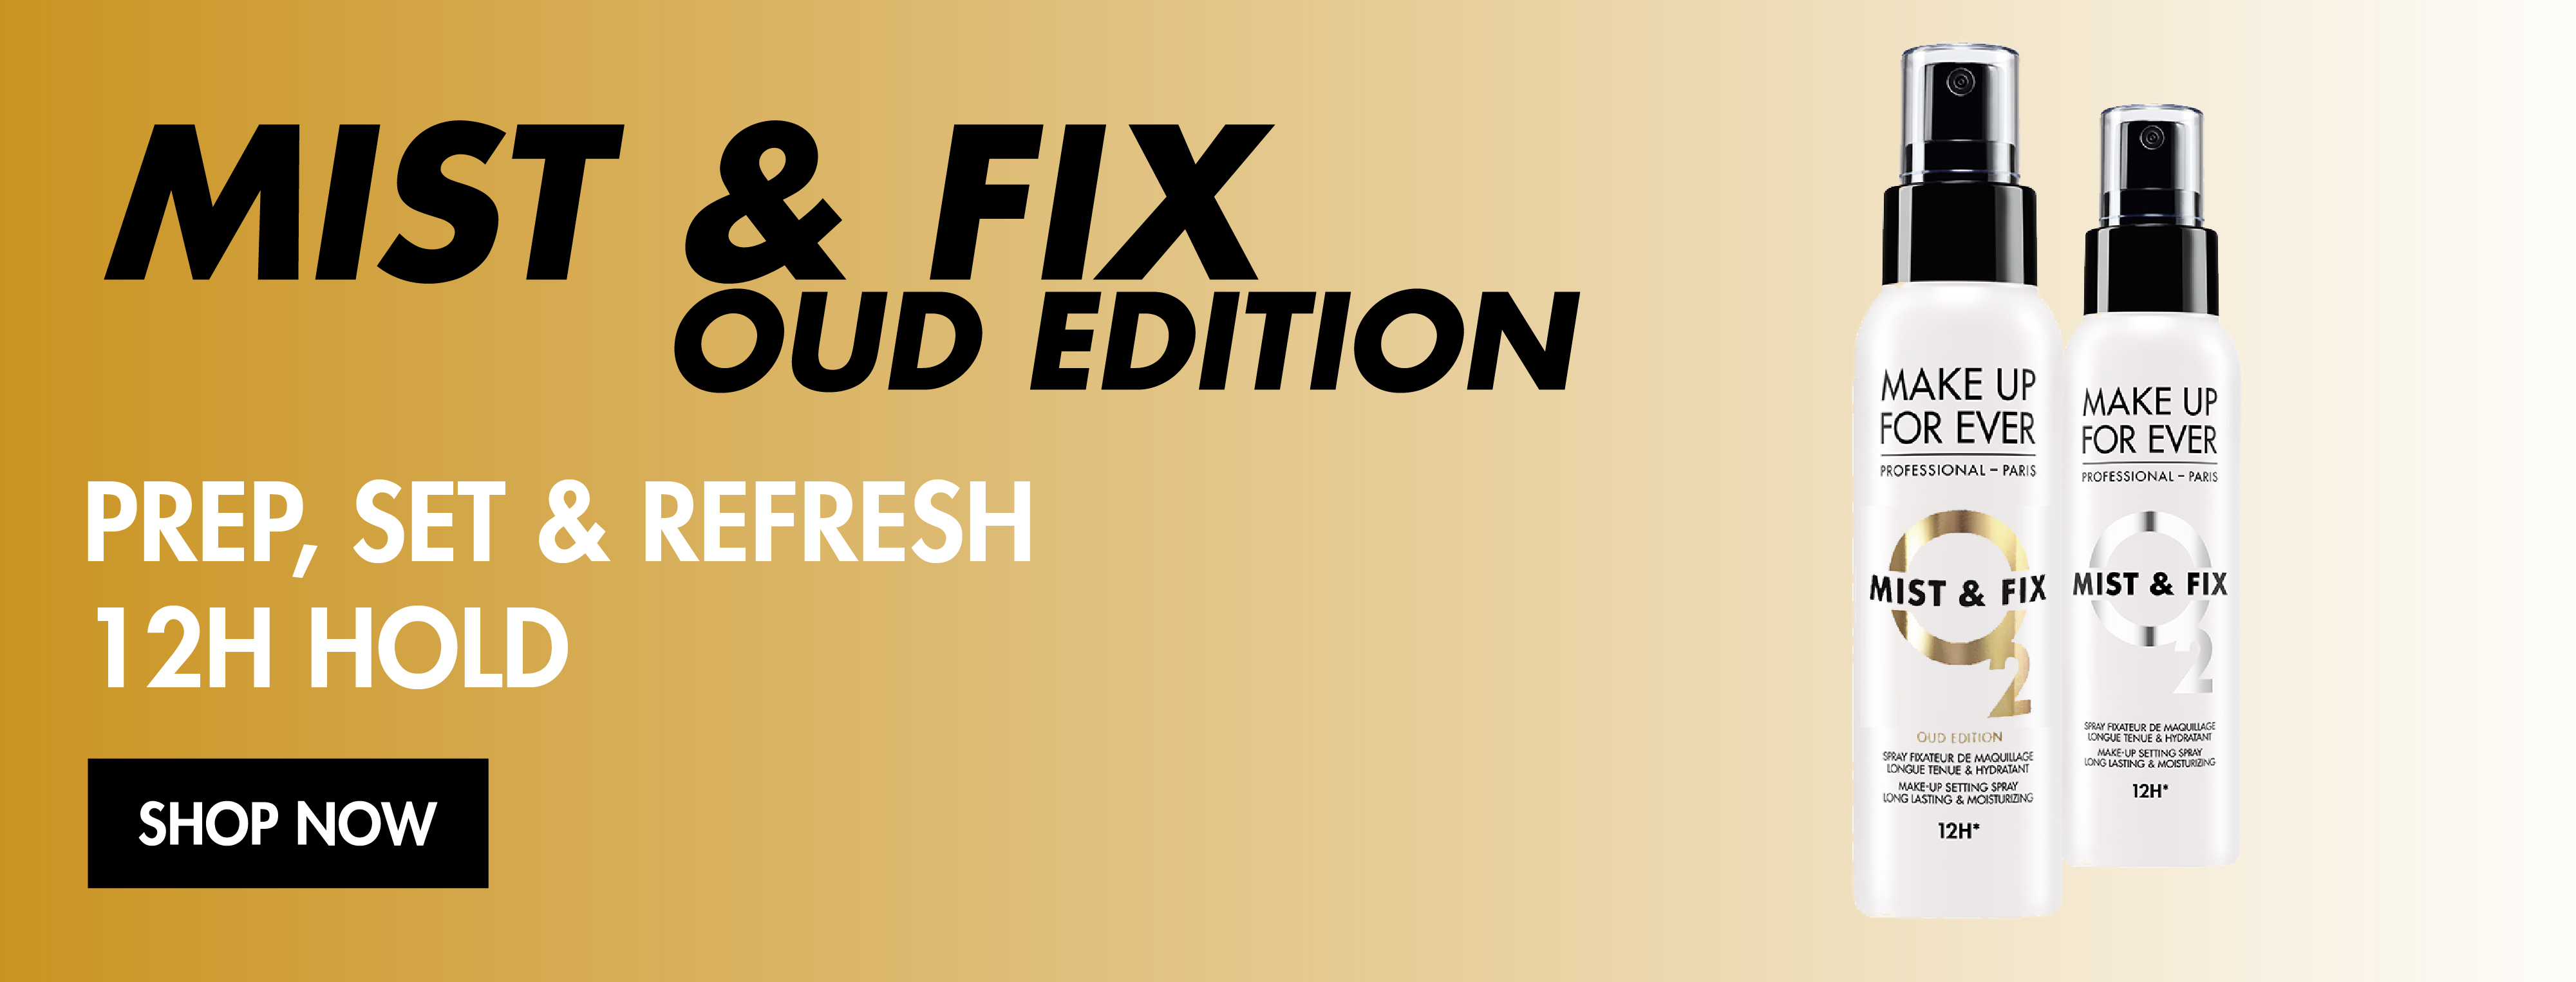 MAKE UP FOR EVER - MIST & FIX OUD